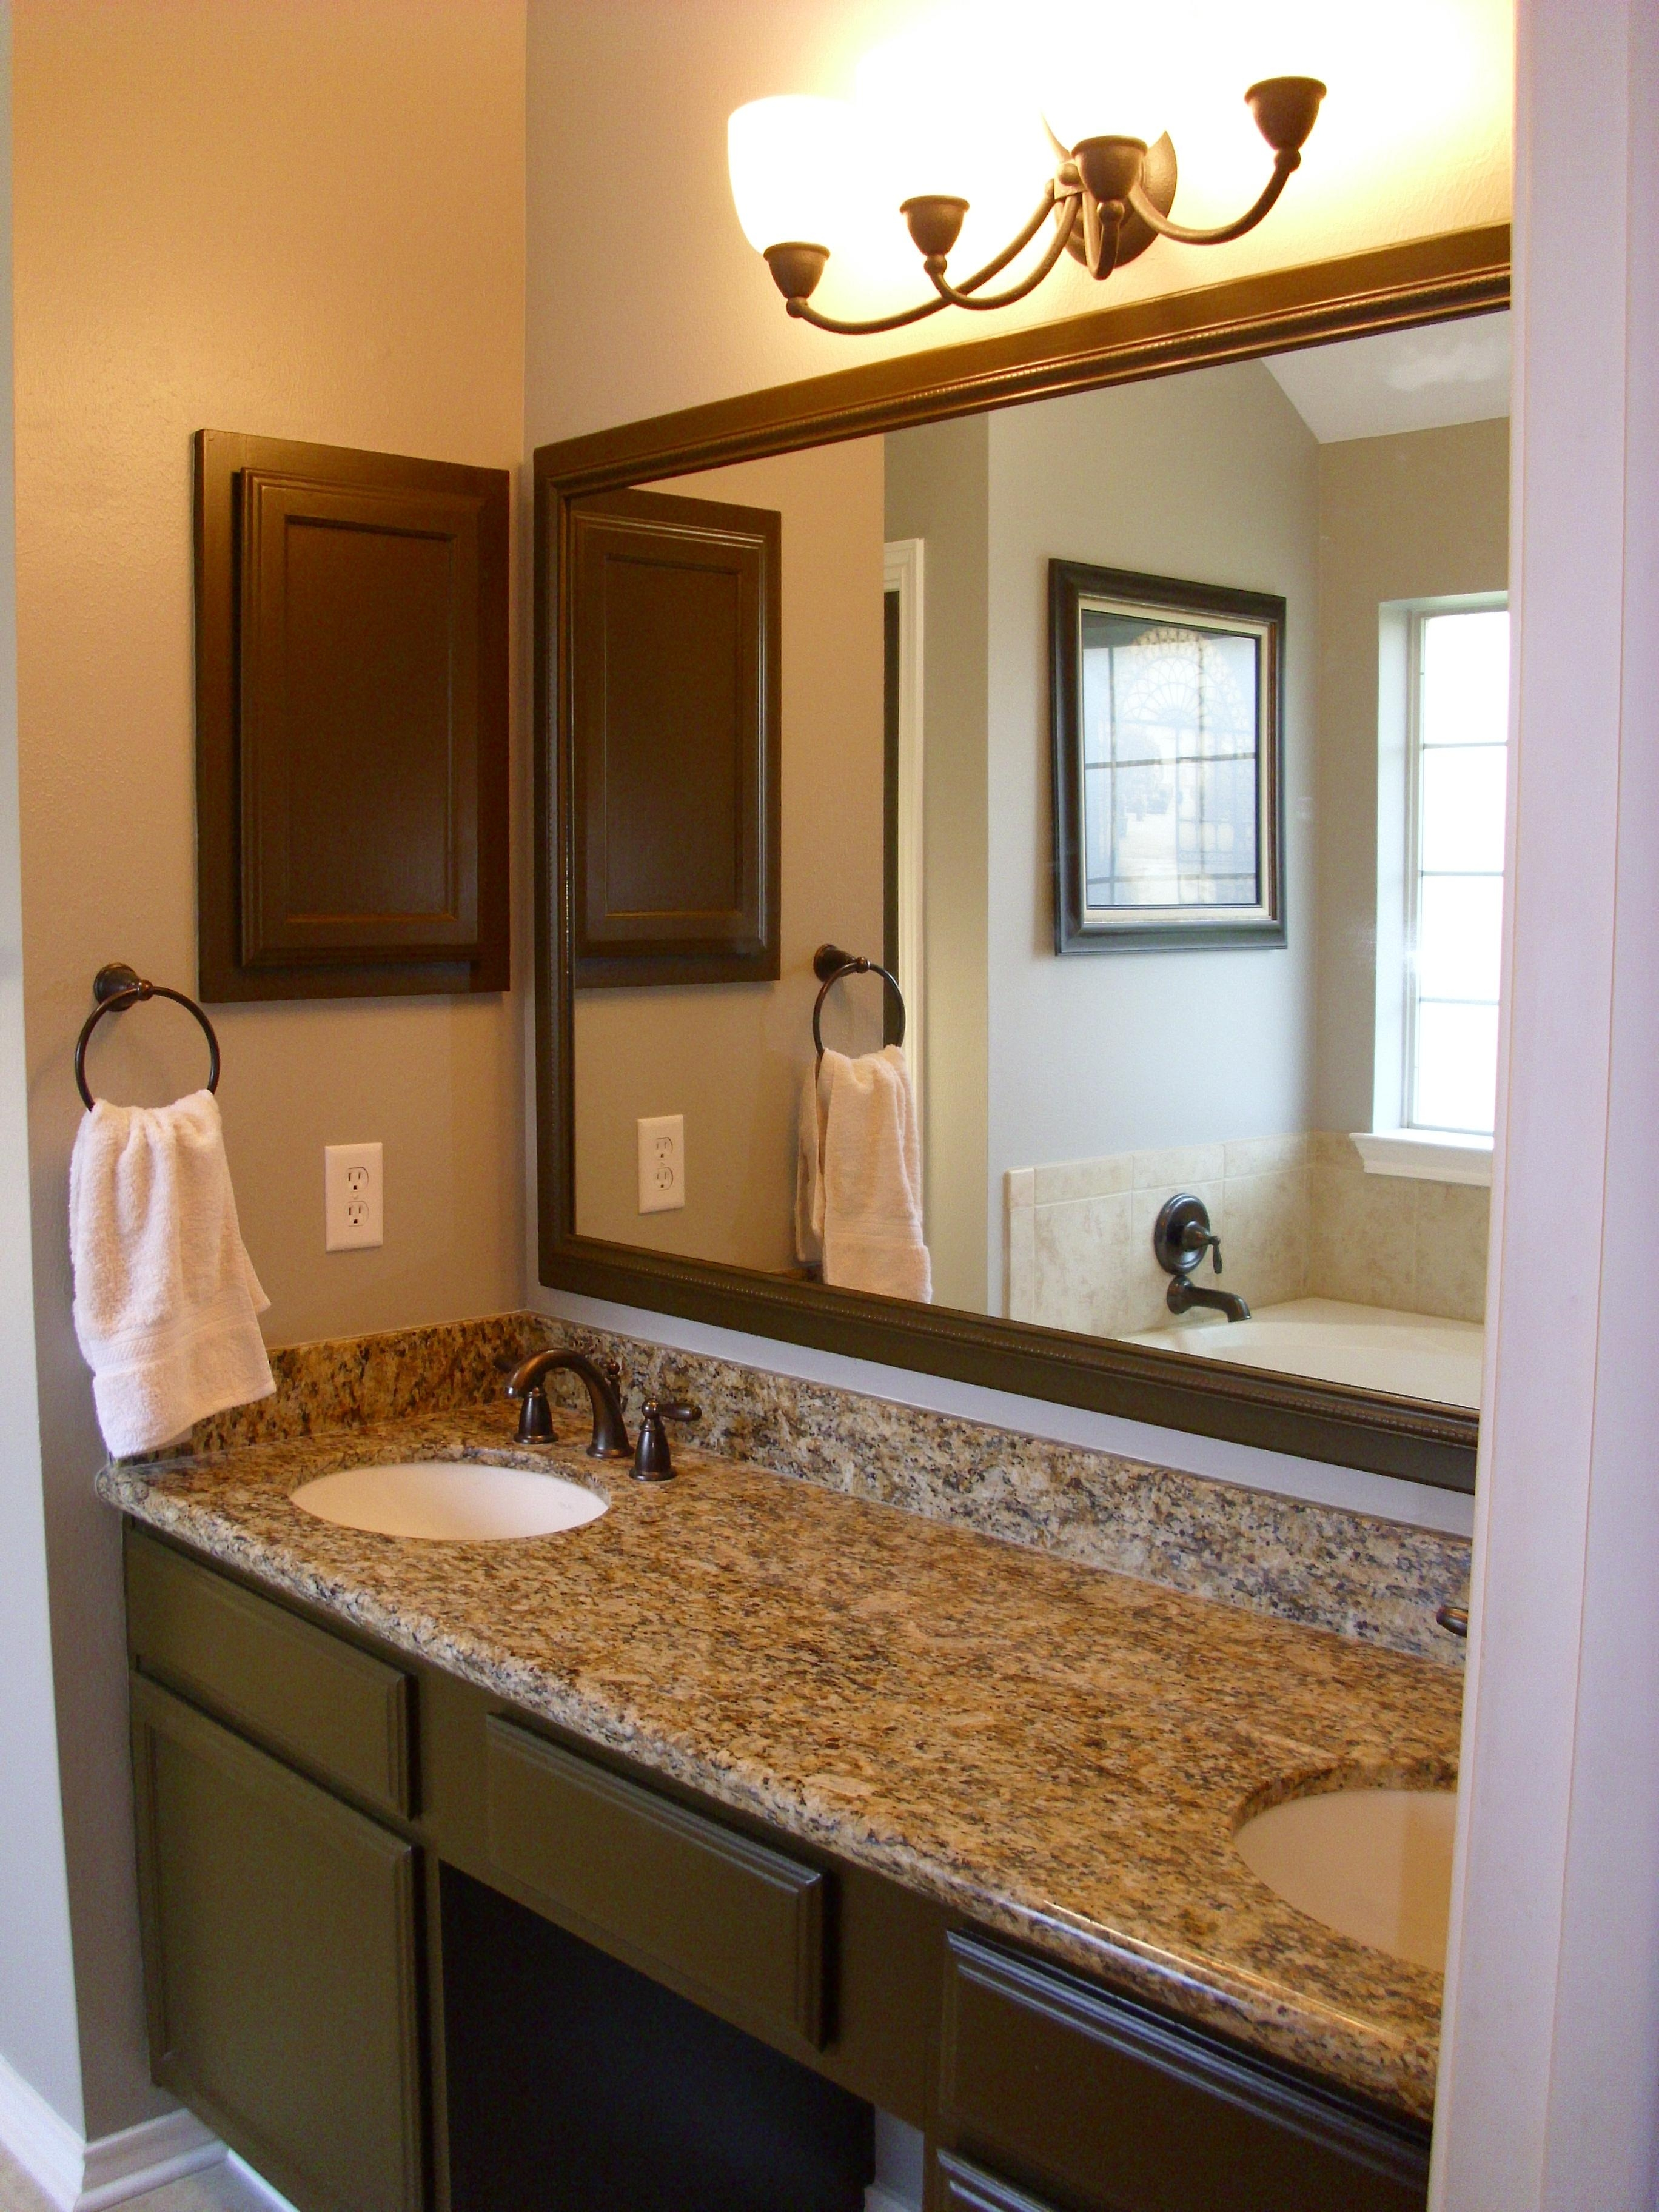 Hotel Bathroom Mirrors For Sqale Liquidators | Home With Regard To Hotel Mirrors (View 15 of 20)